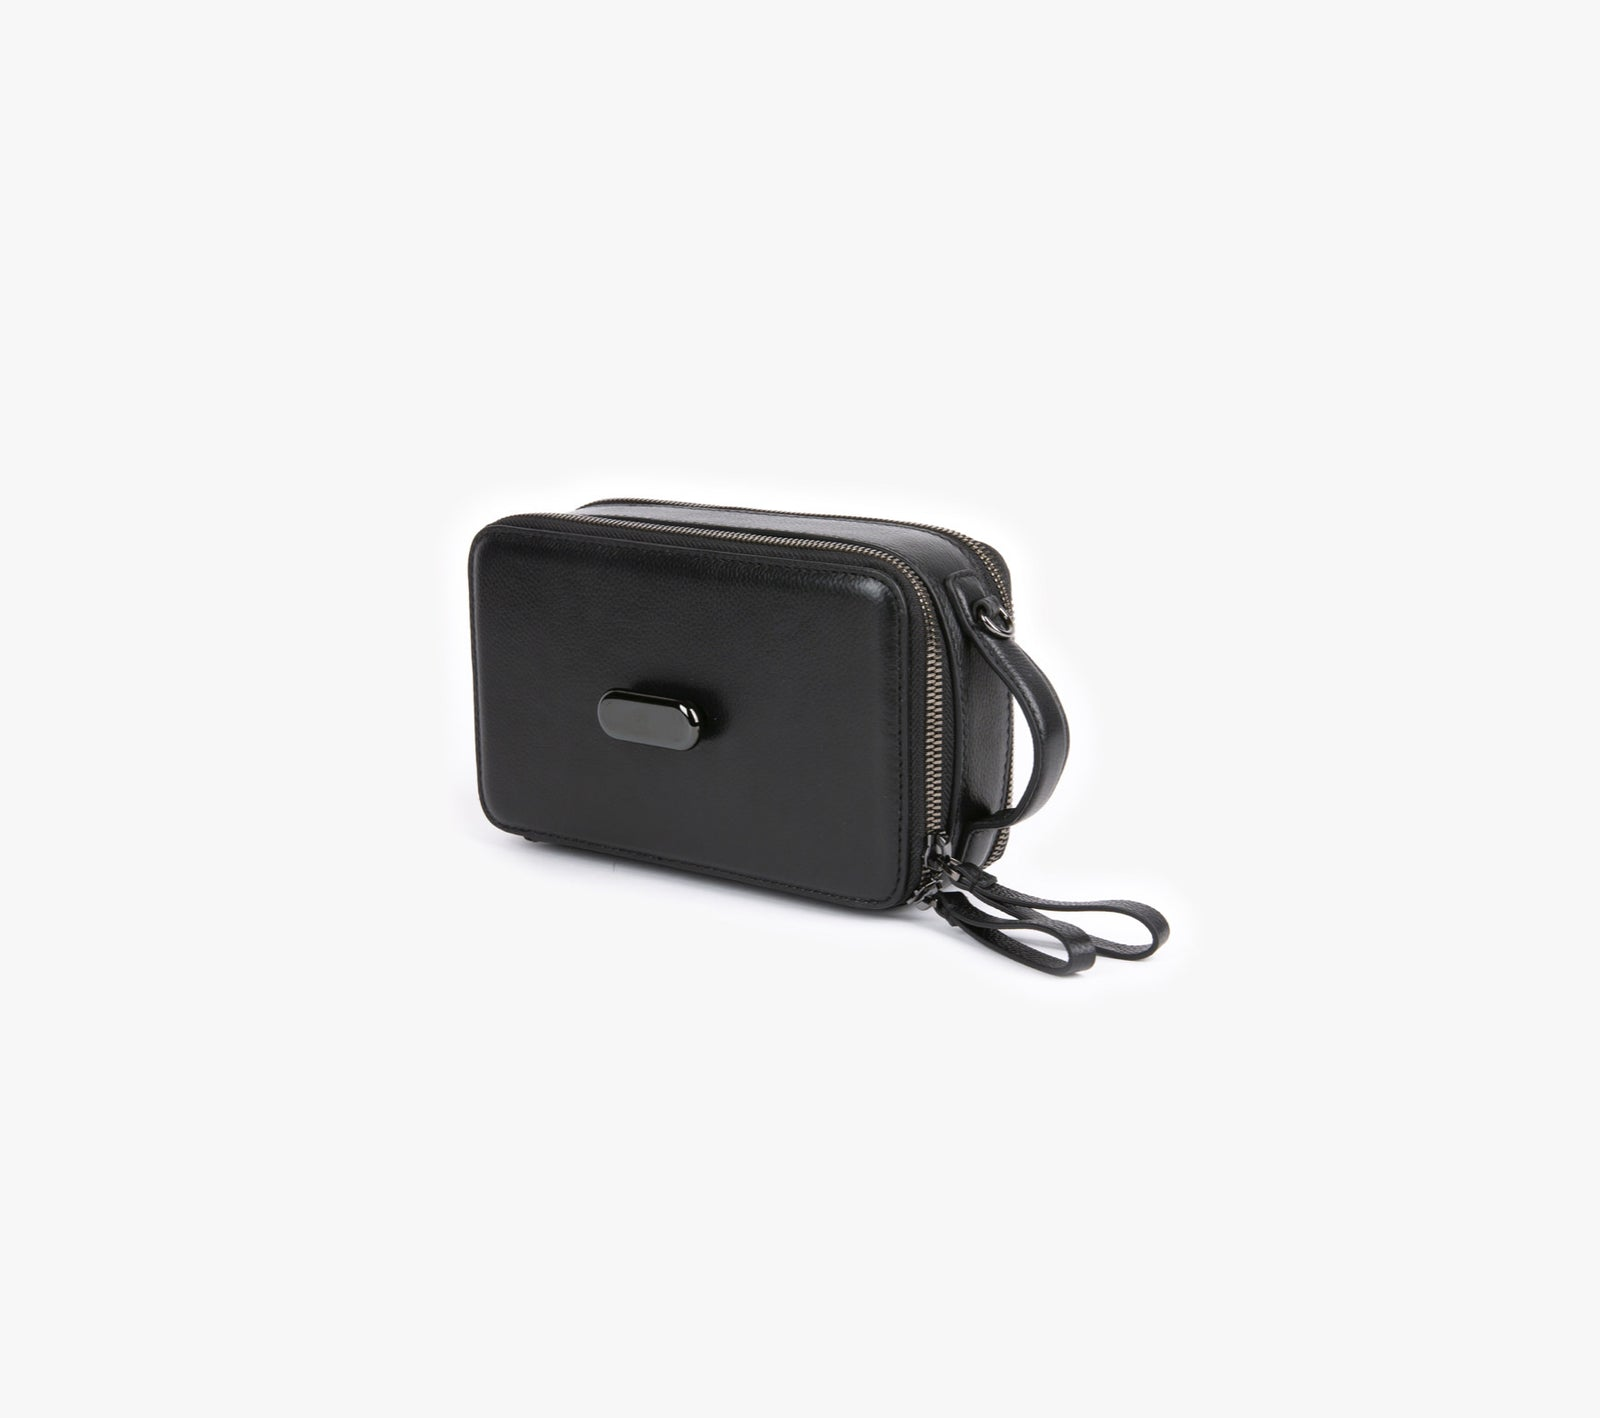 Essentials Plus Bag in Black